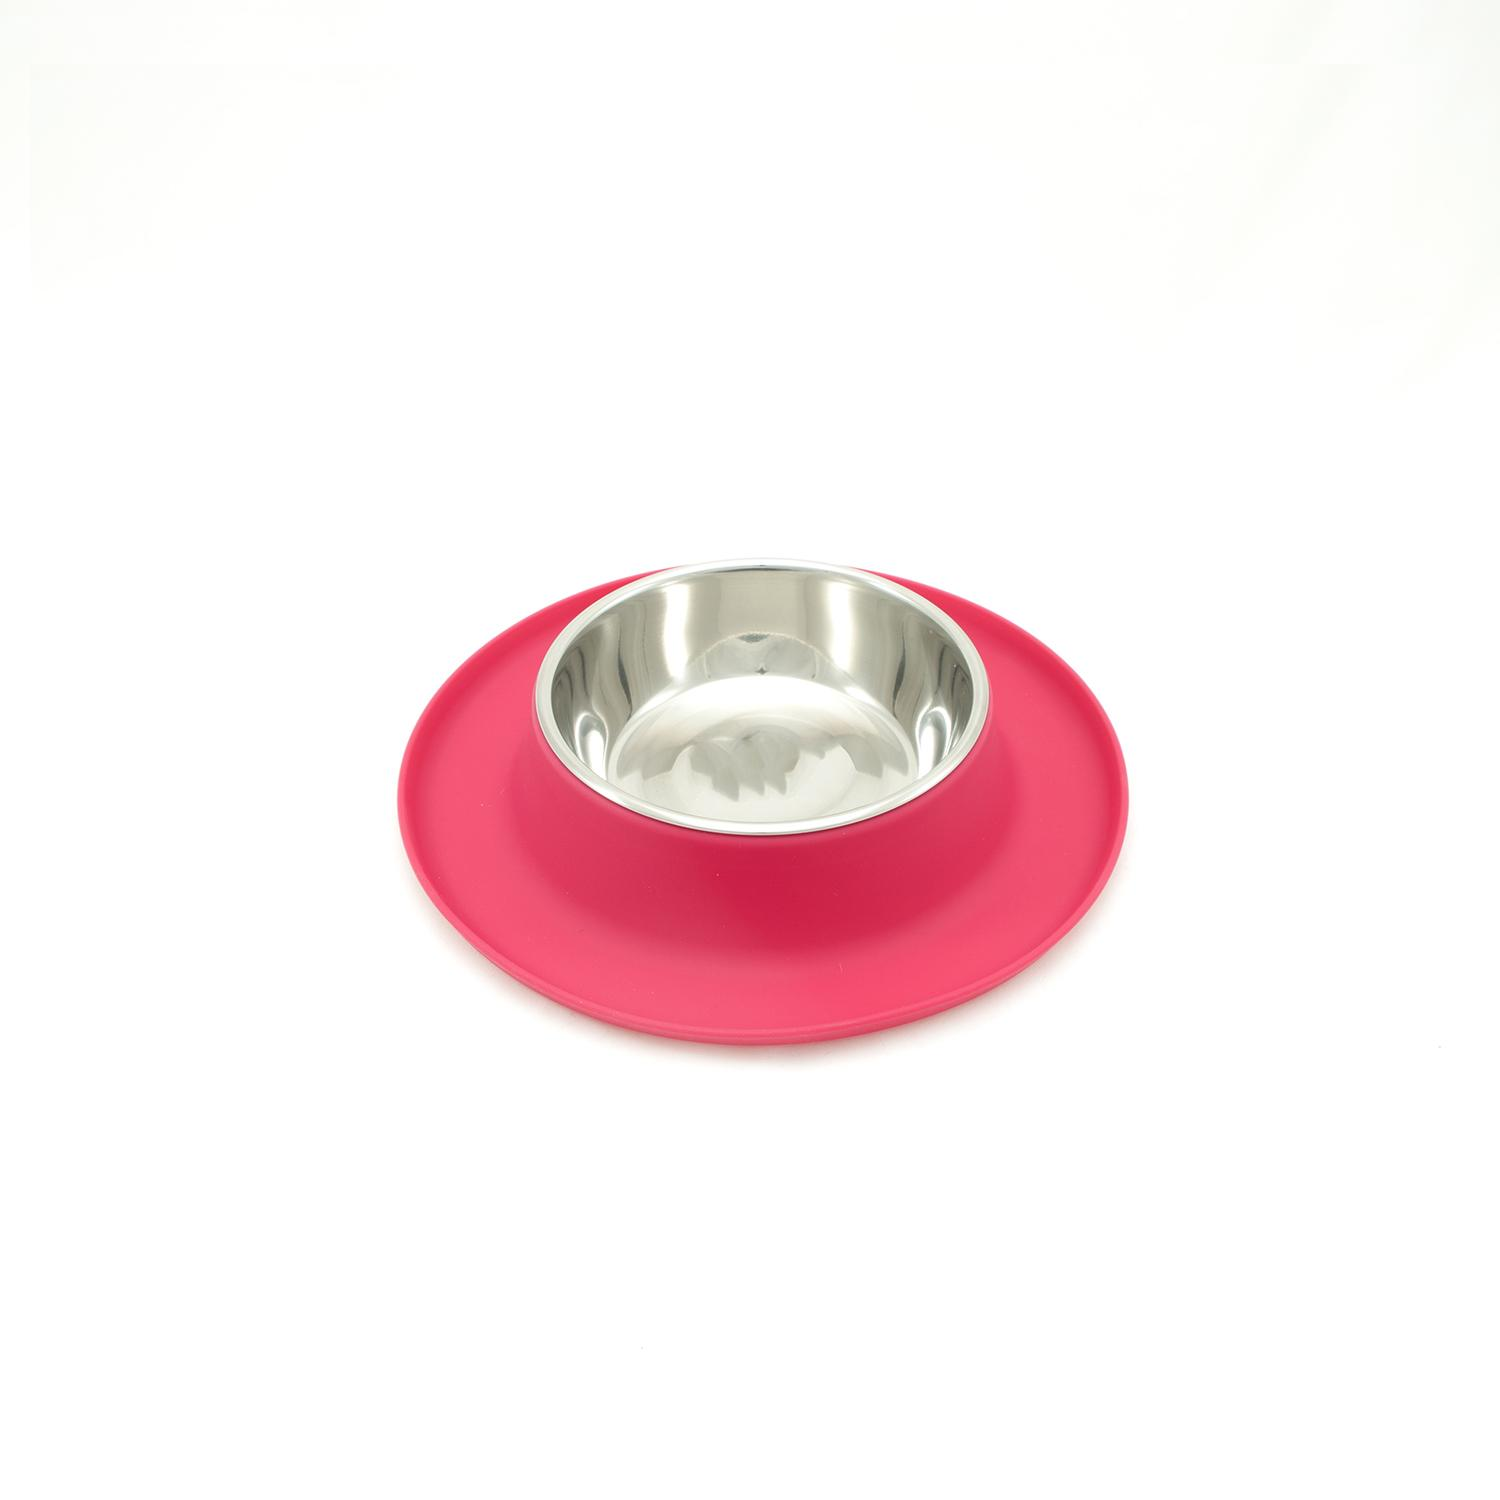 Messy Cats Single Silicone Feeder with Stainless Saucer Shaped Bowl, Watermelon Image